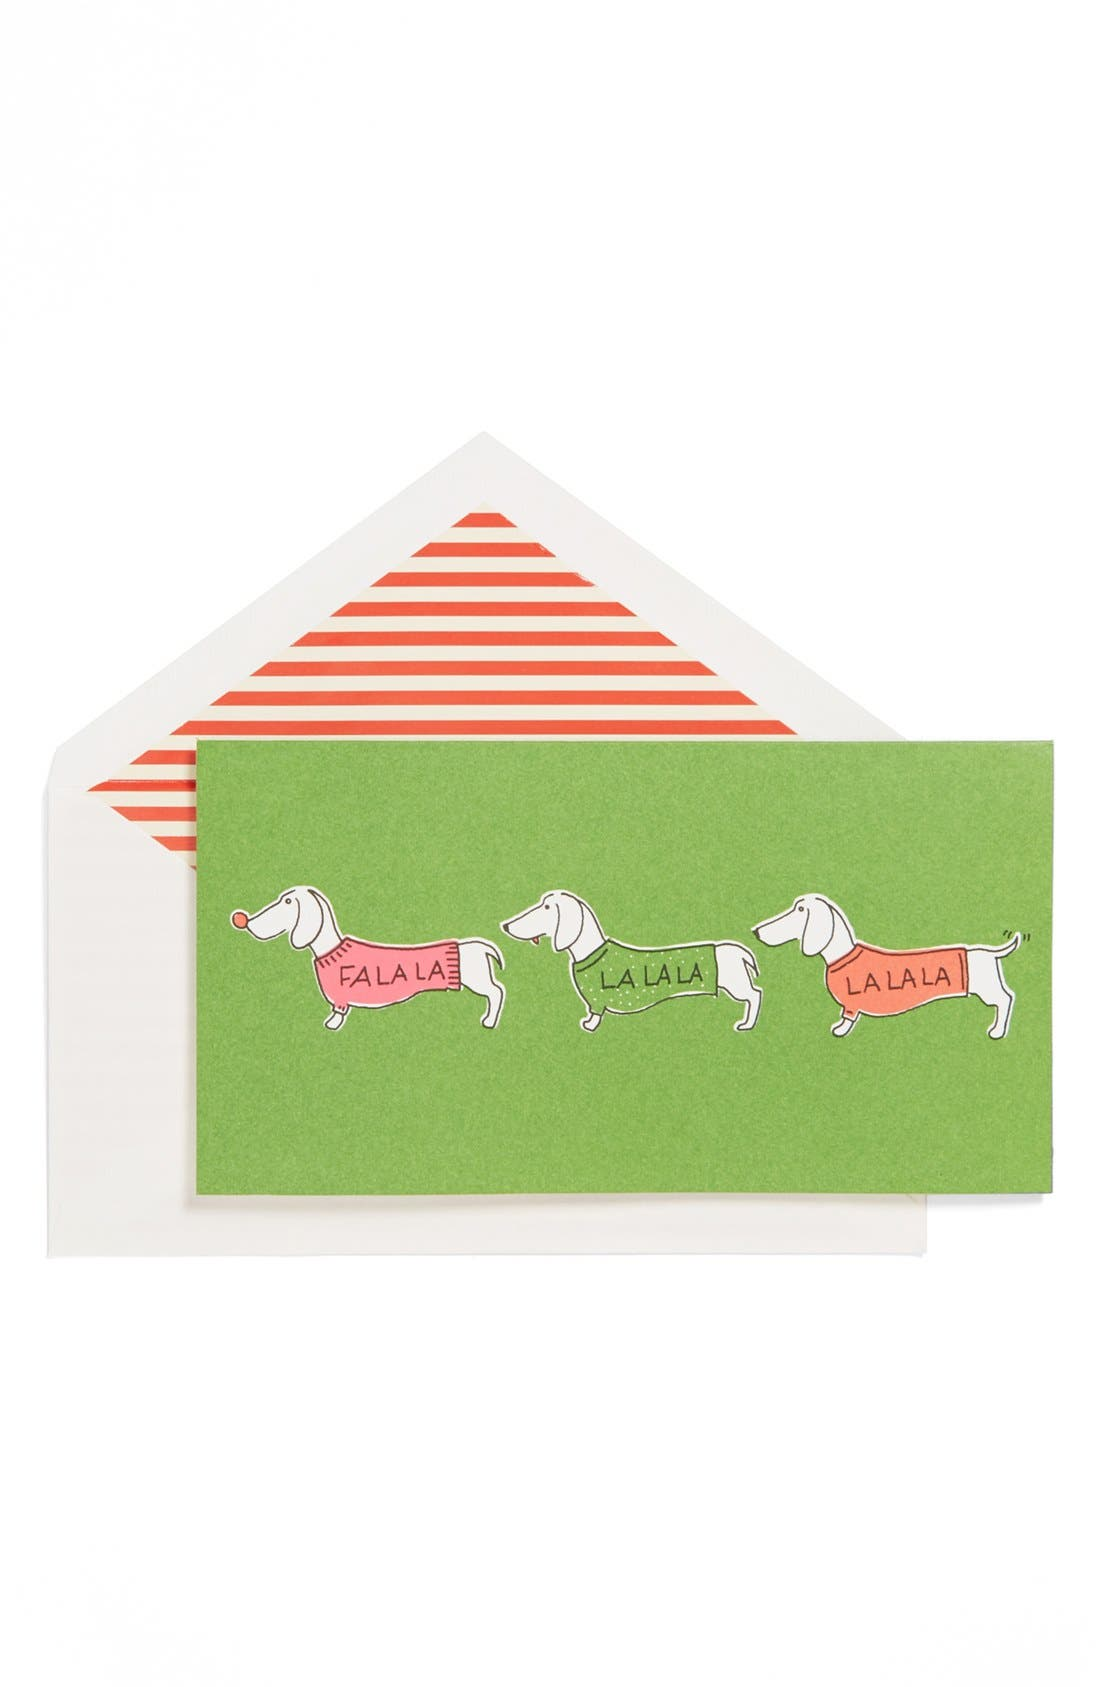 Alternate Image 1 Selected - kate spade new york 'fa la la' holiday cards (set of 10)